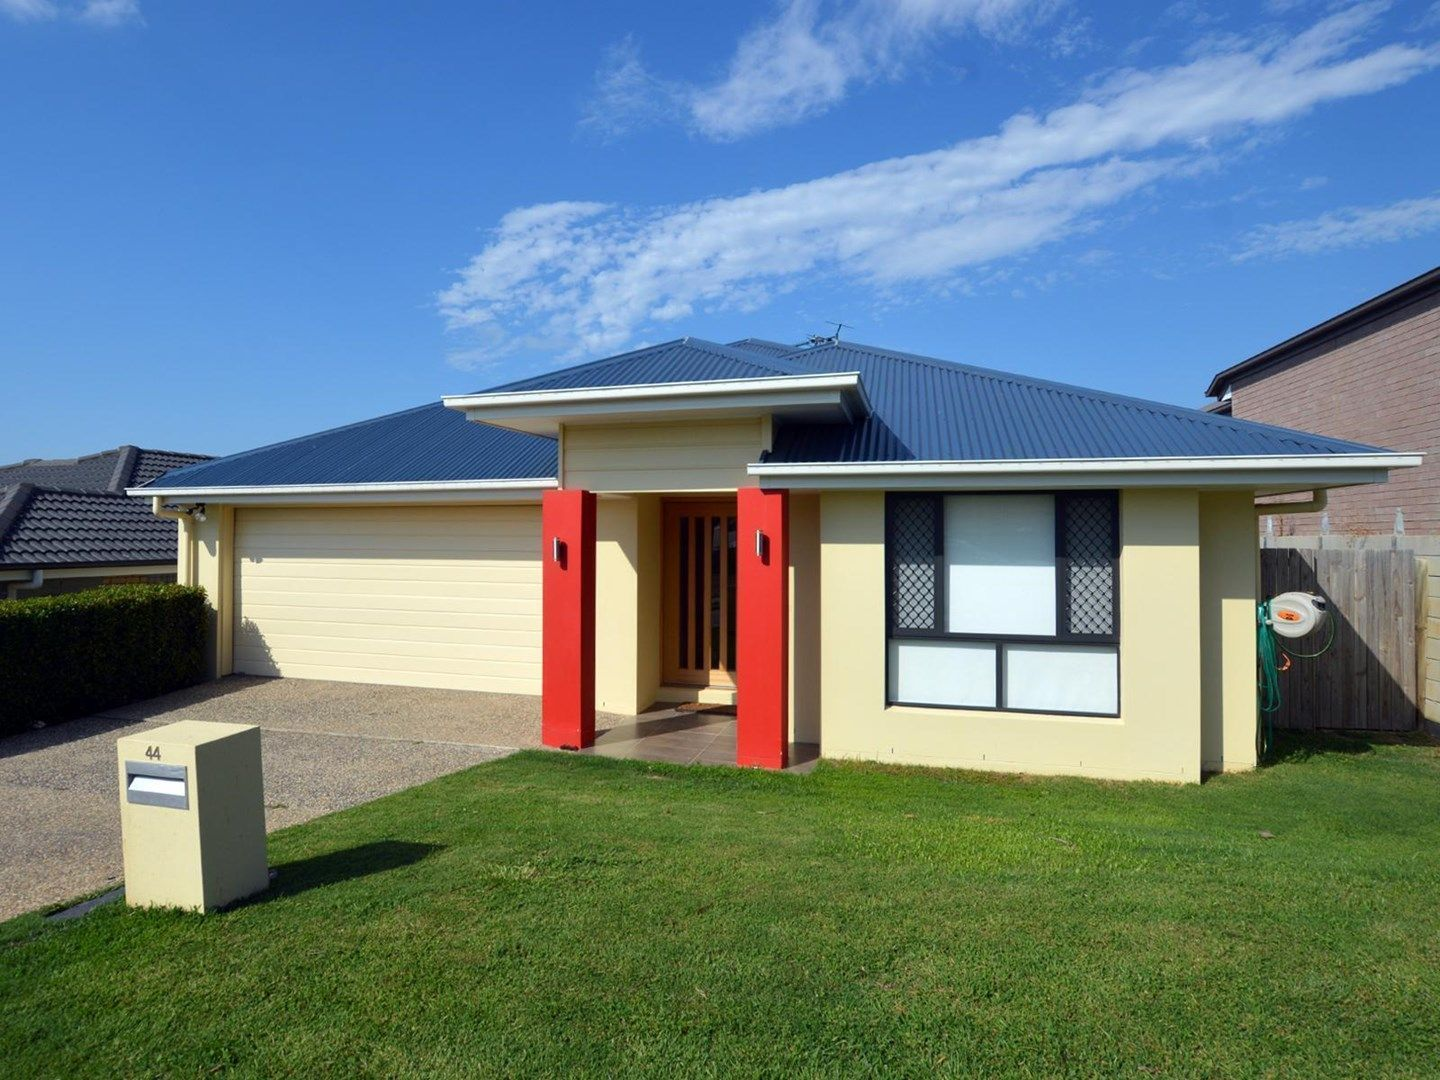 44 Angelica Avenue, Springfield Lakes QLD 4300, Image 0